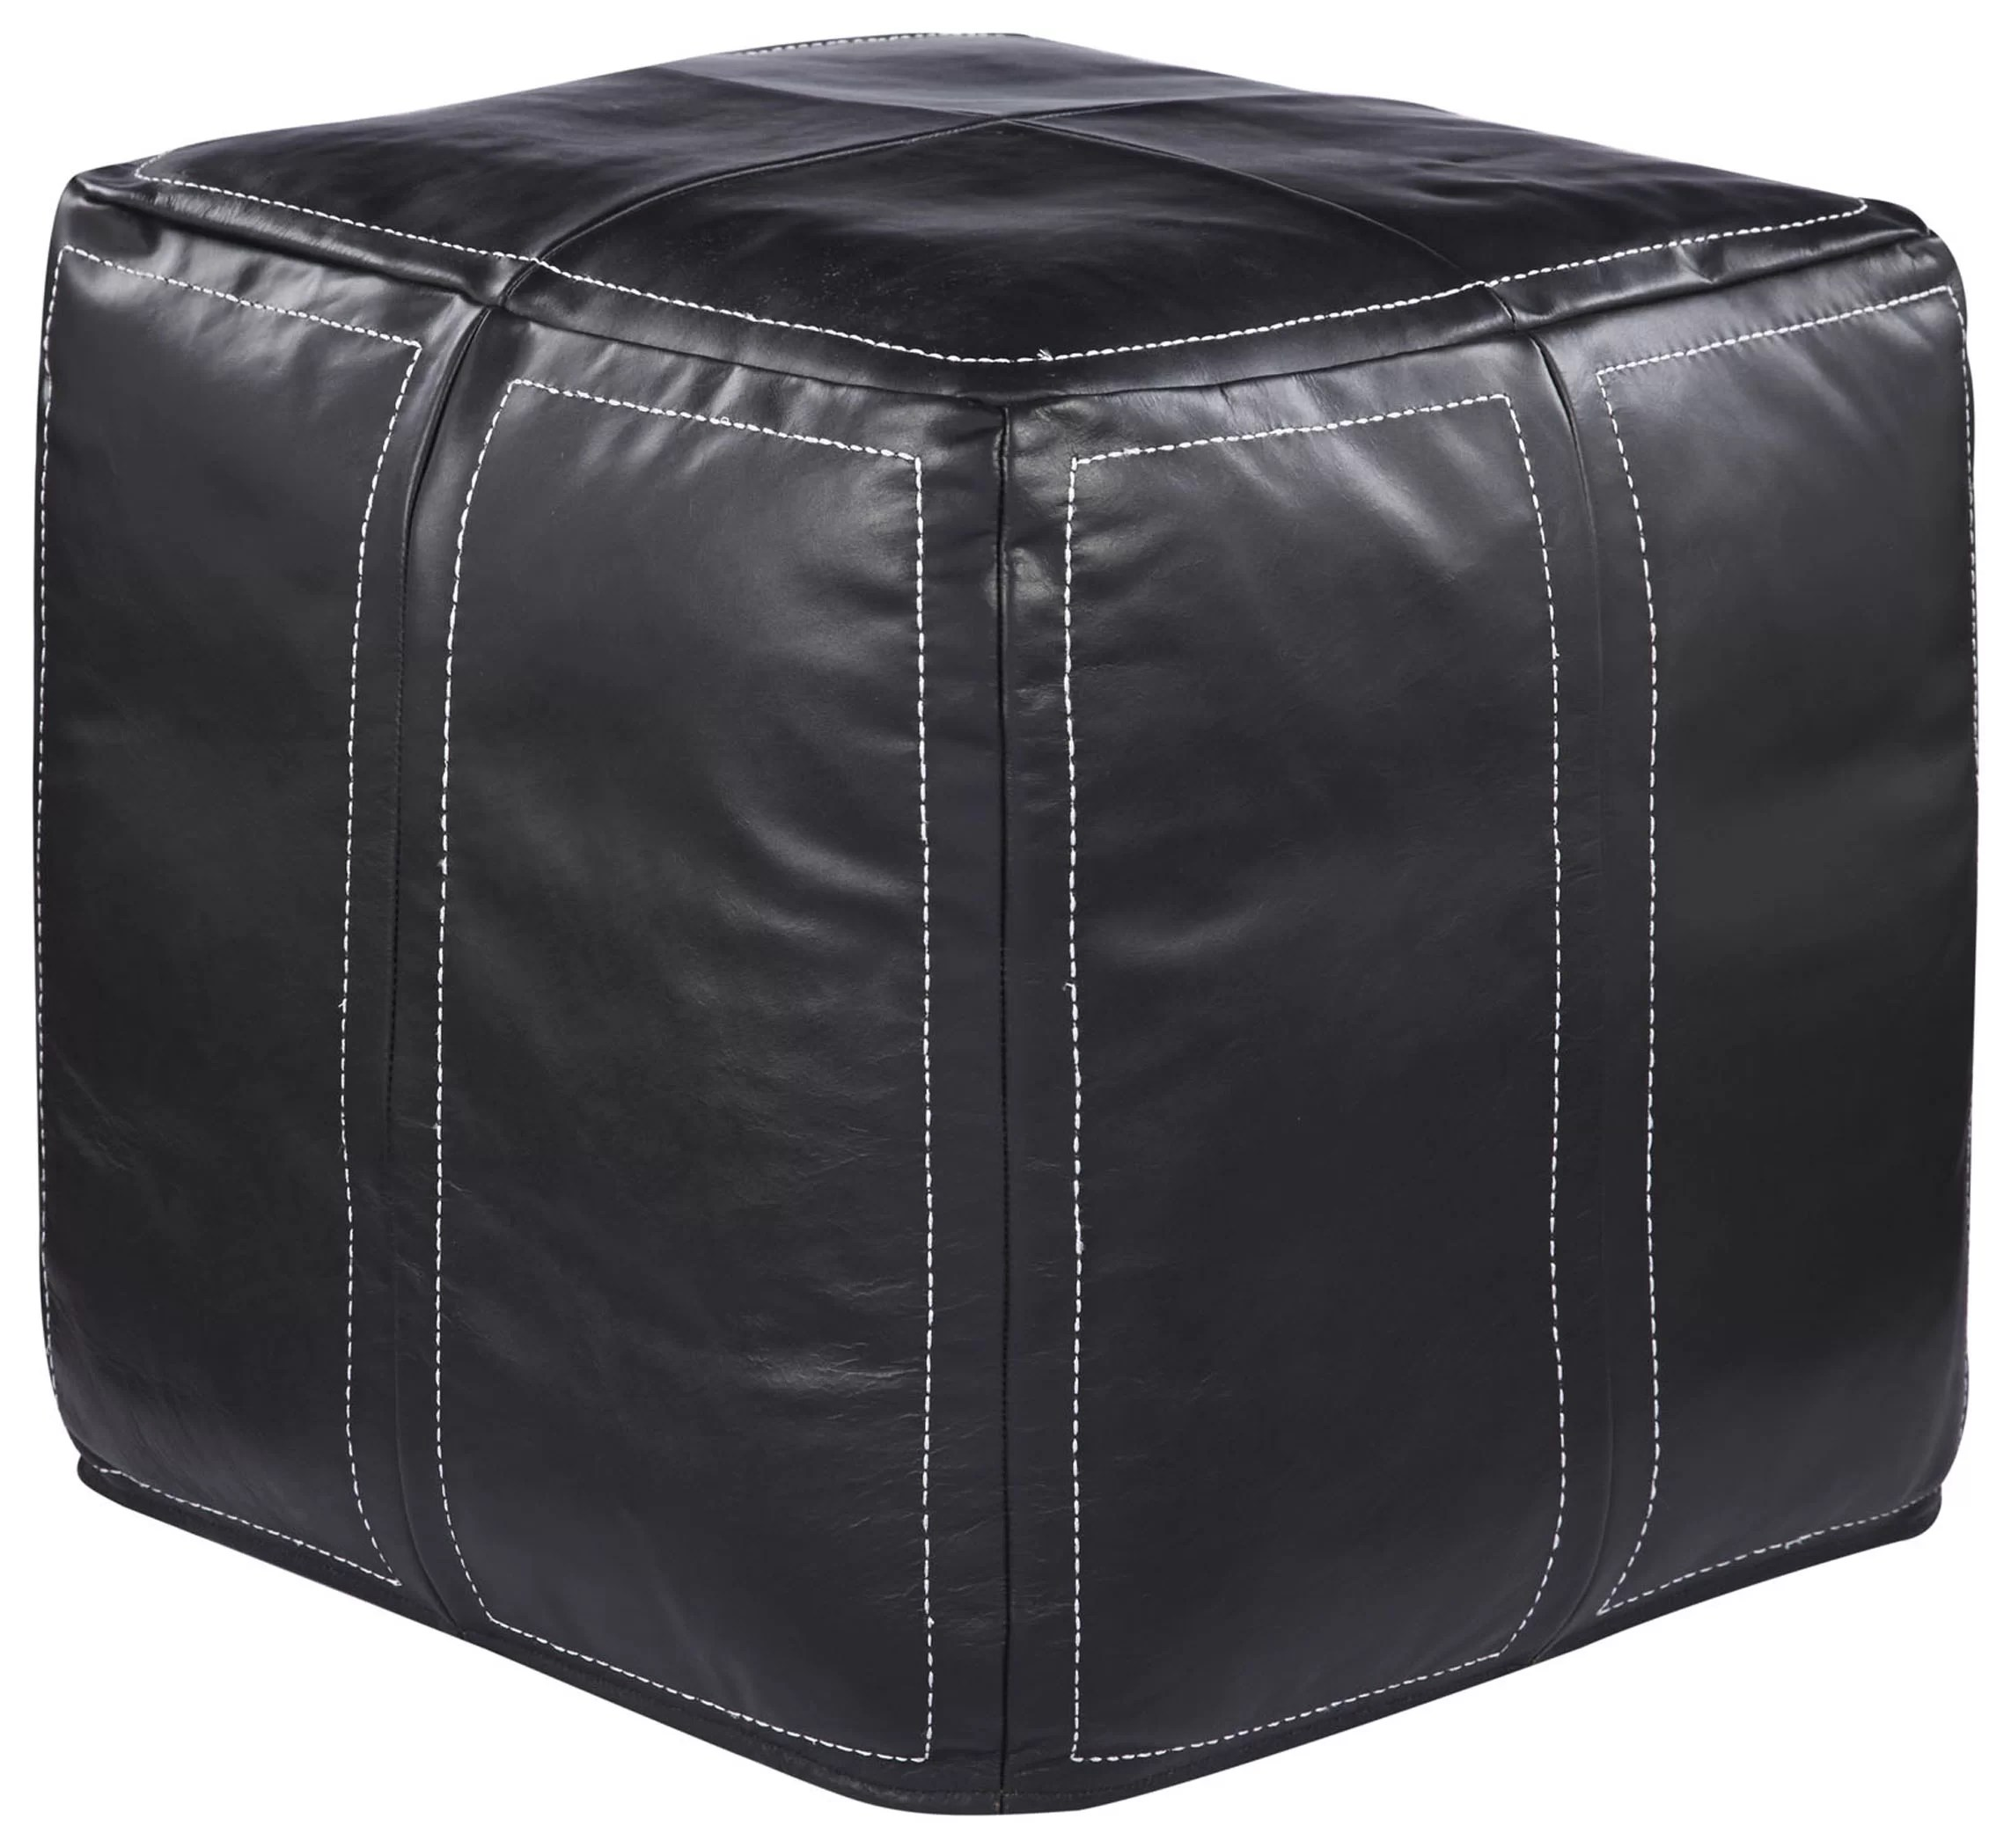 Moroccan Leather Pouf Design Sit Down Pinterest Leather Ultra By Nikki Chu Leather Pouf